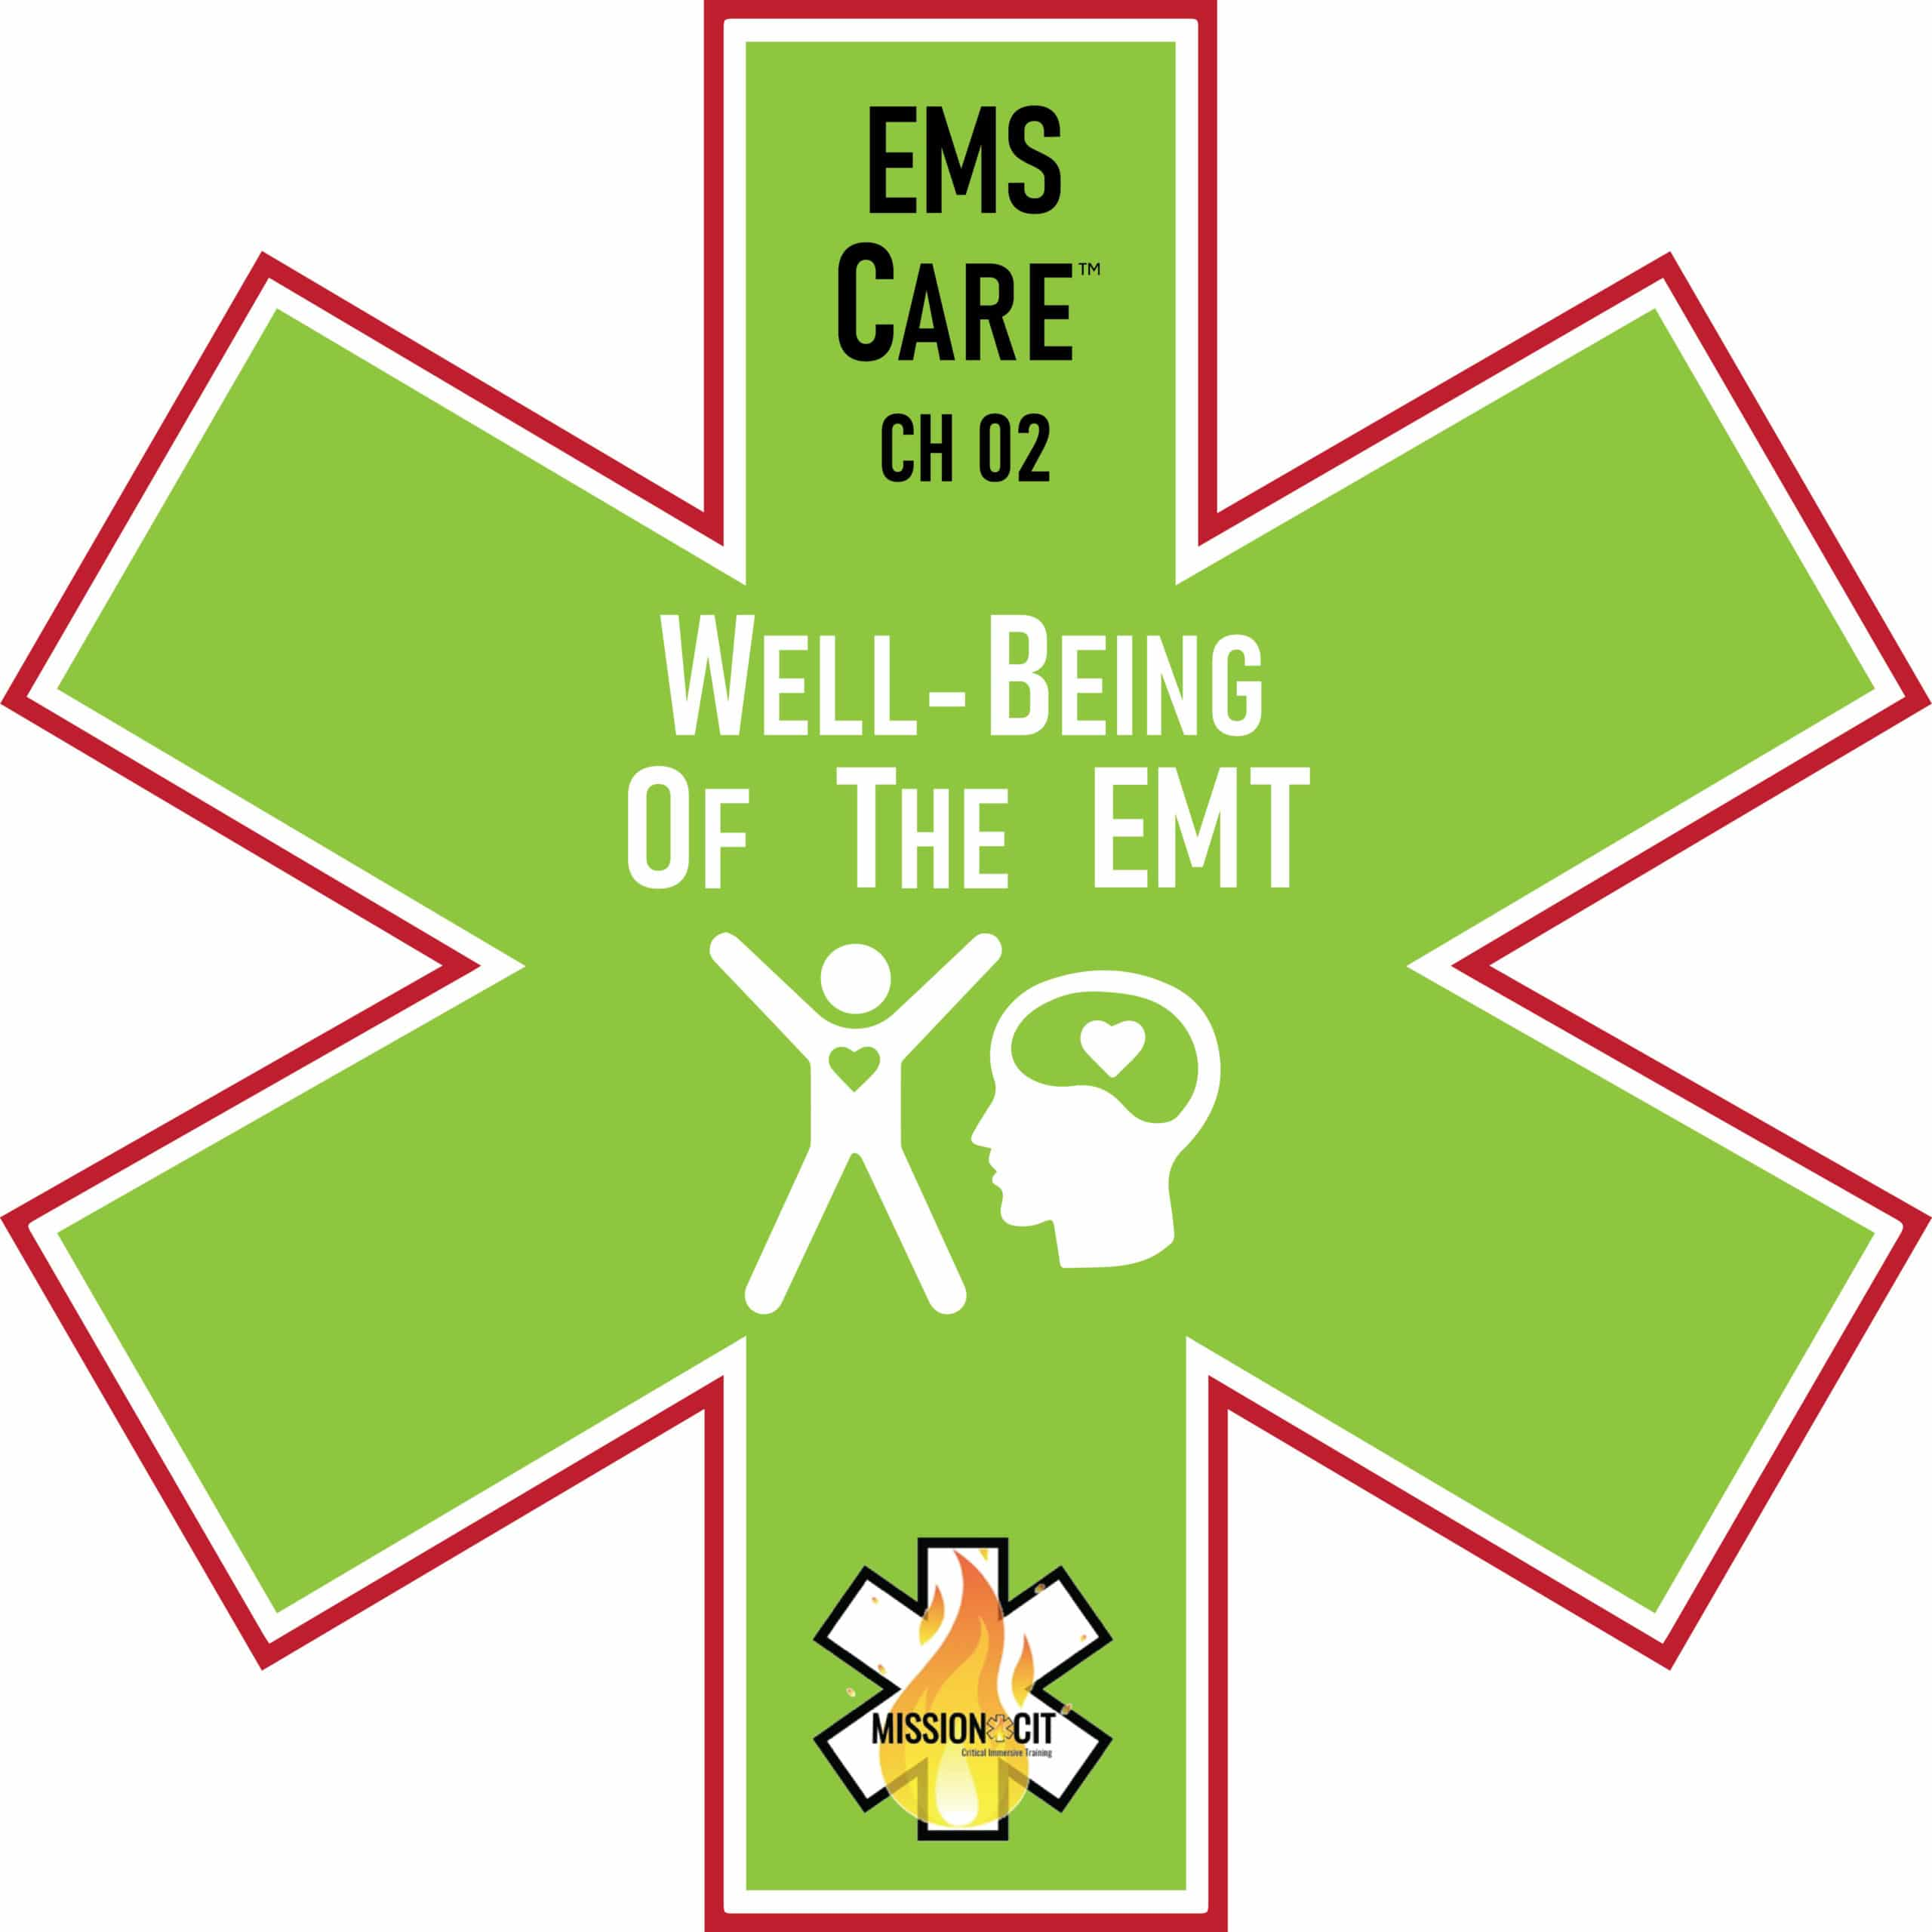 EMS Care Chapter 2 | Well-Being of the EMT